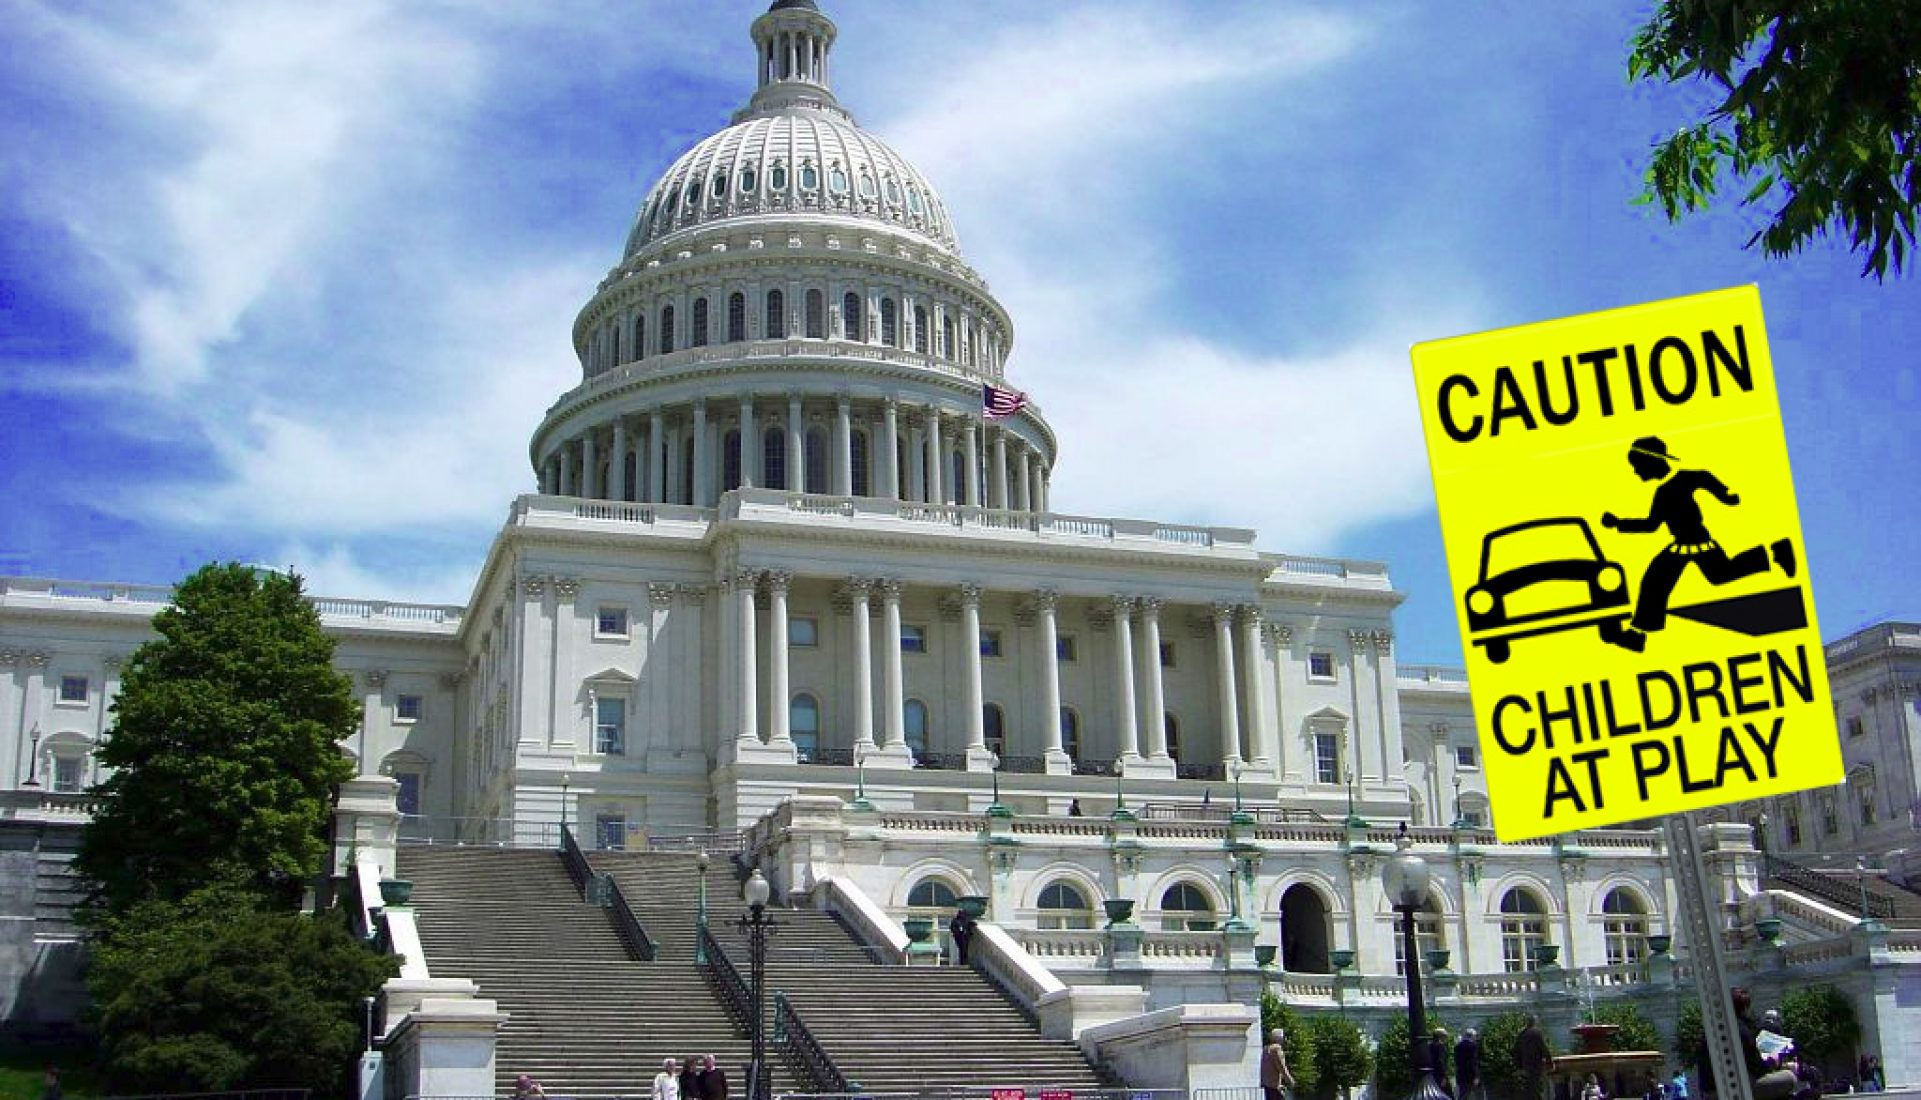 U. S. Capitol – Caution Children at Play – Revisited